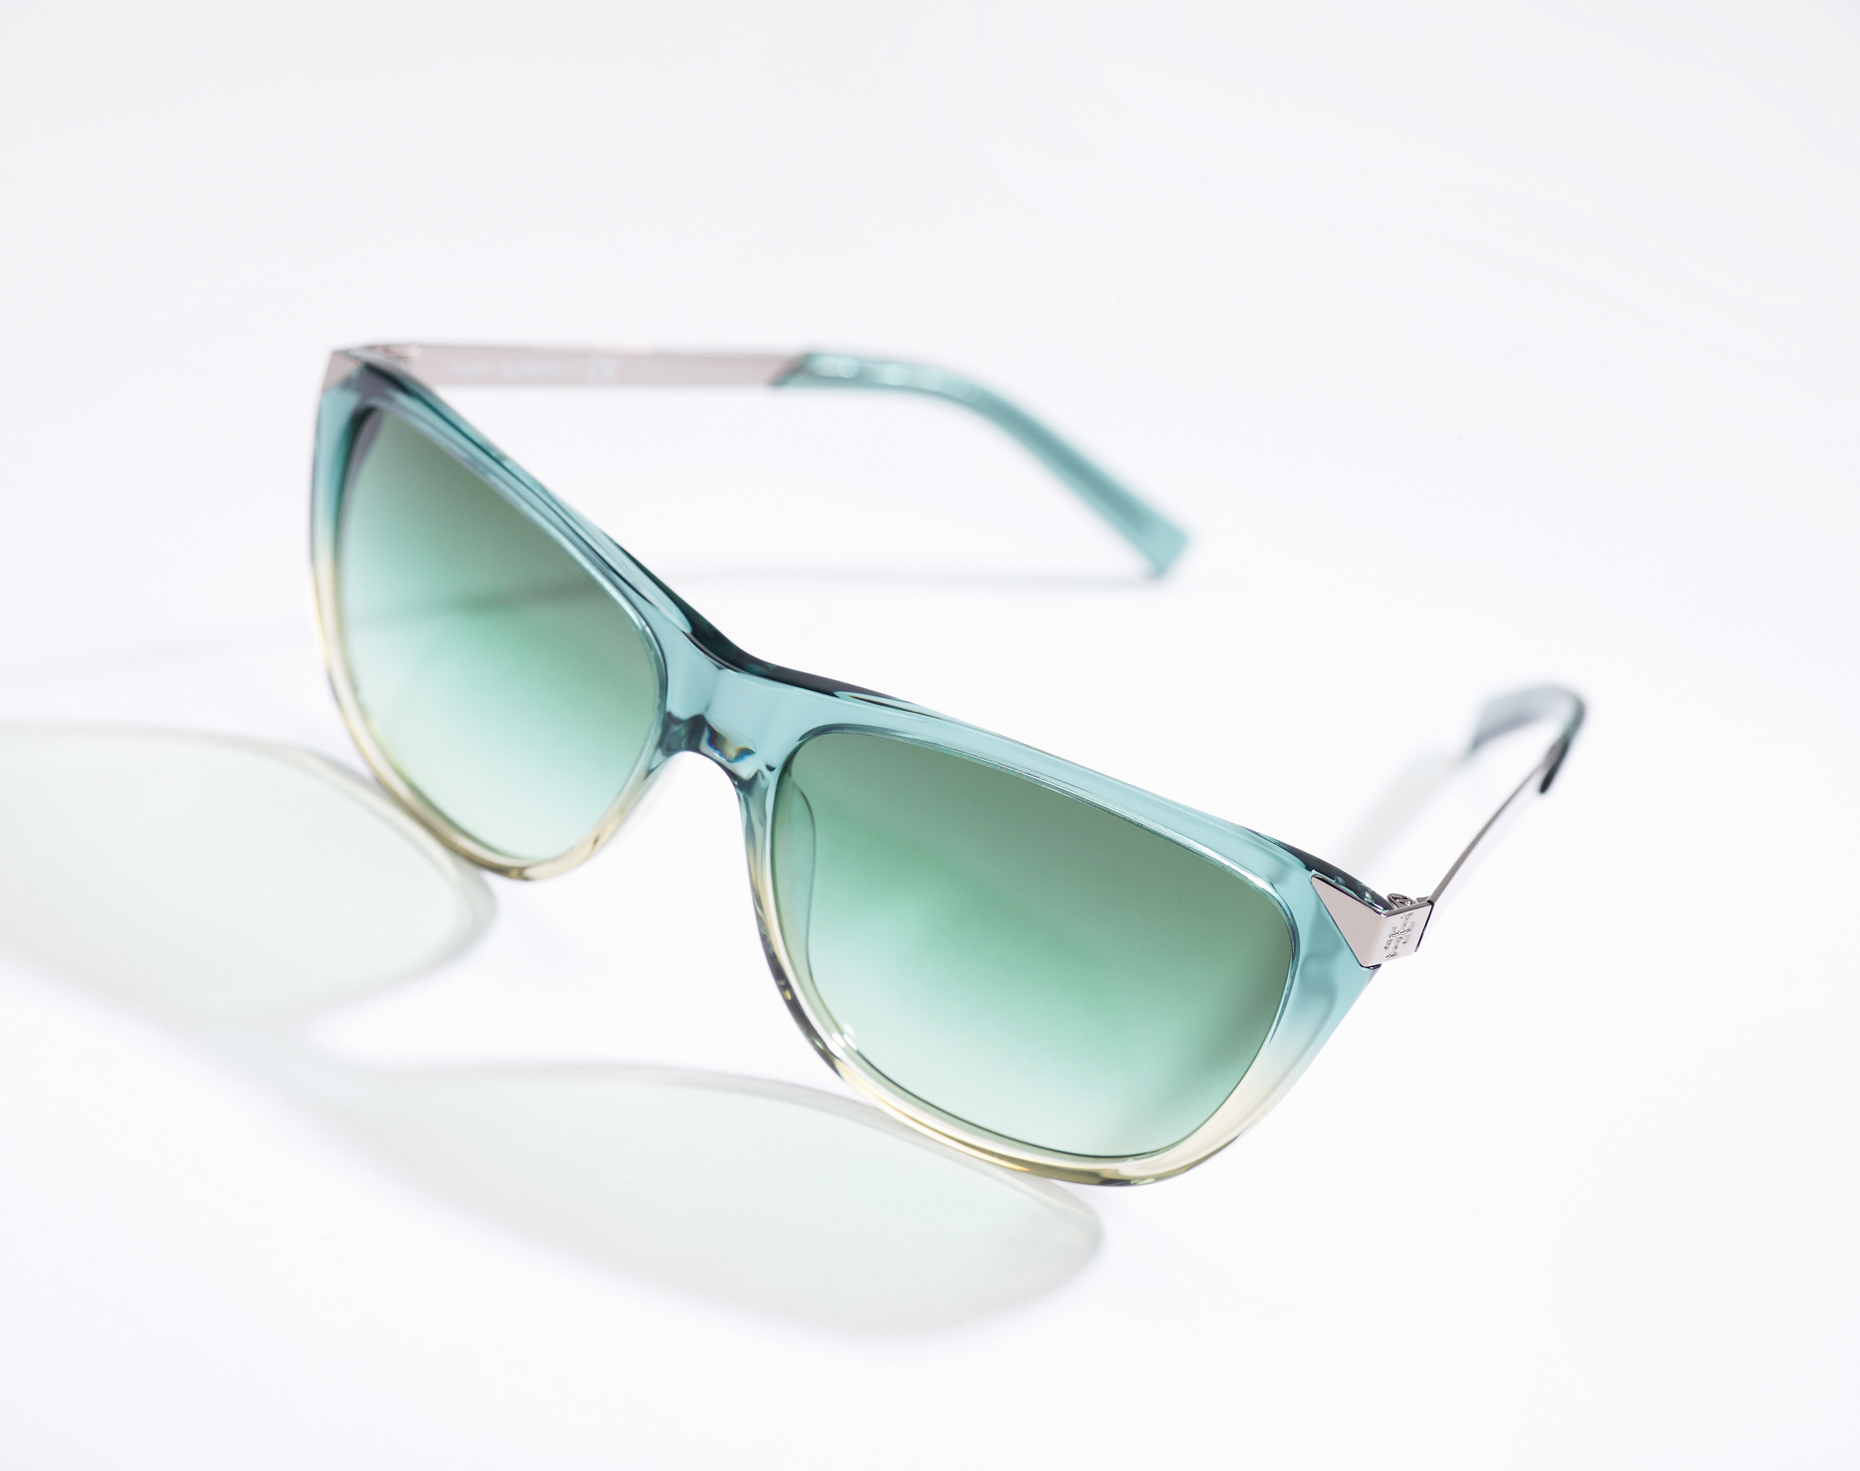 Tory Burch Shades/MOA/ad/product photography